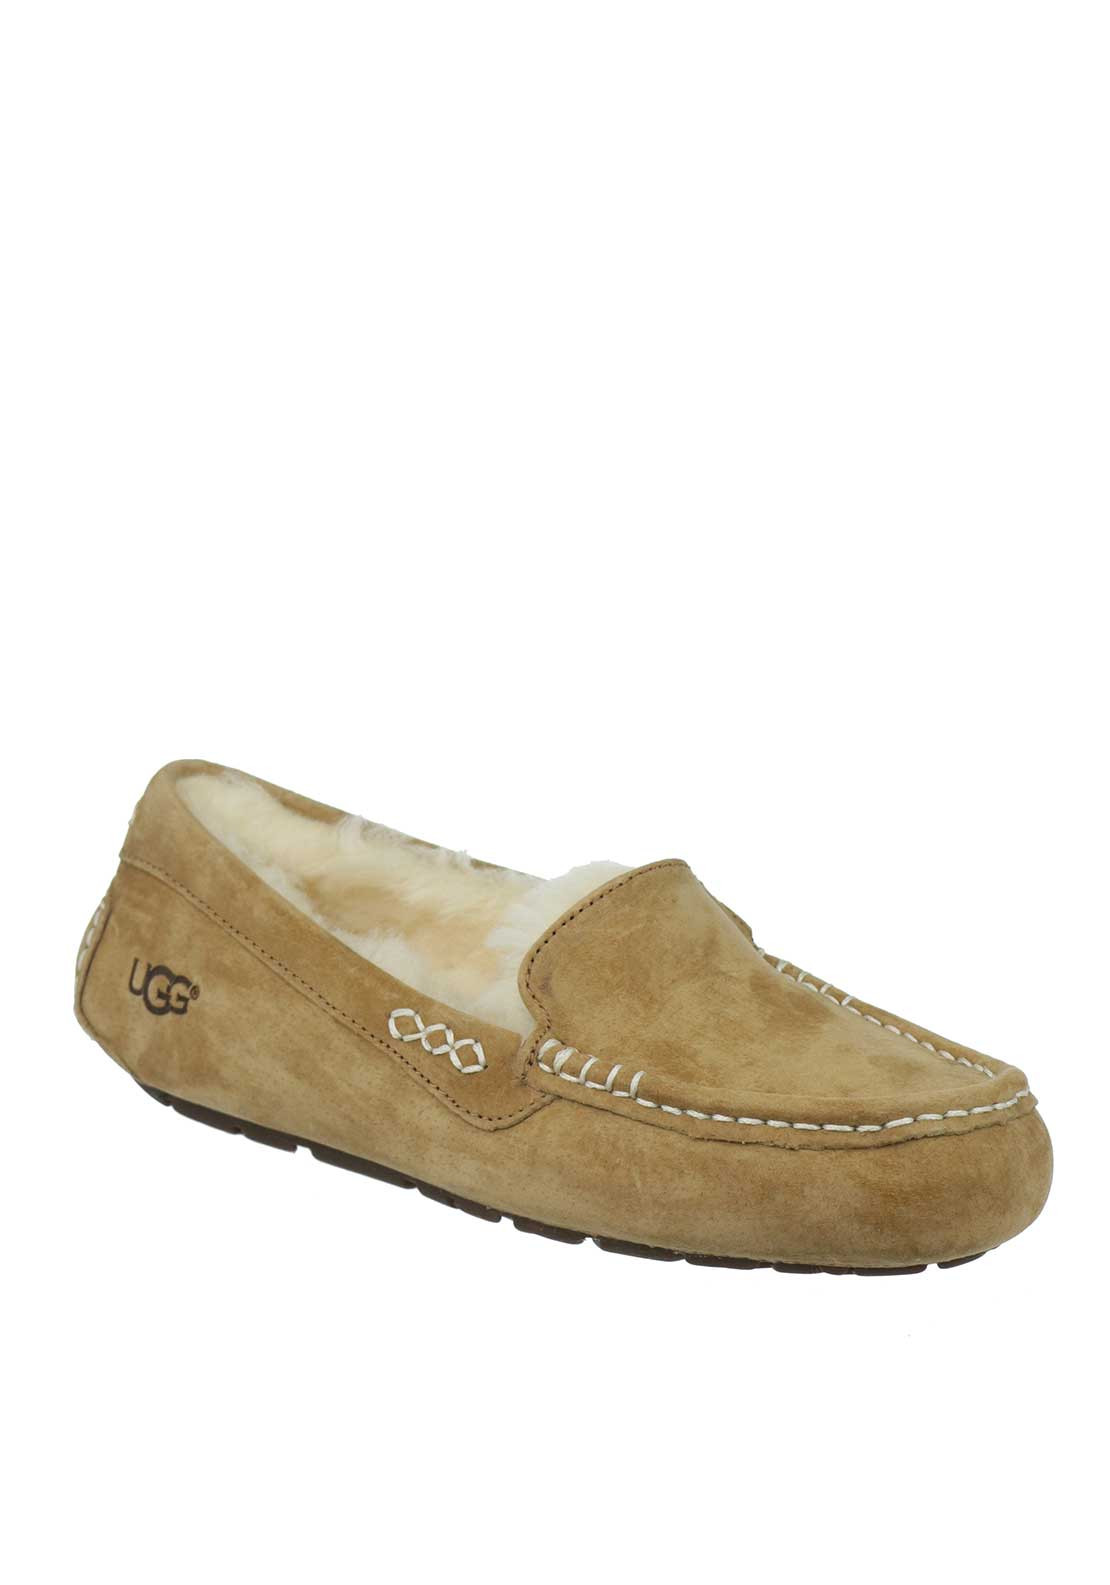 UGG Australia Womens Ansley Suede Slippers, Tan